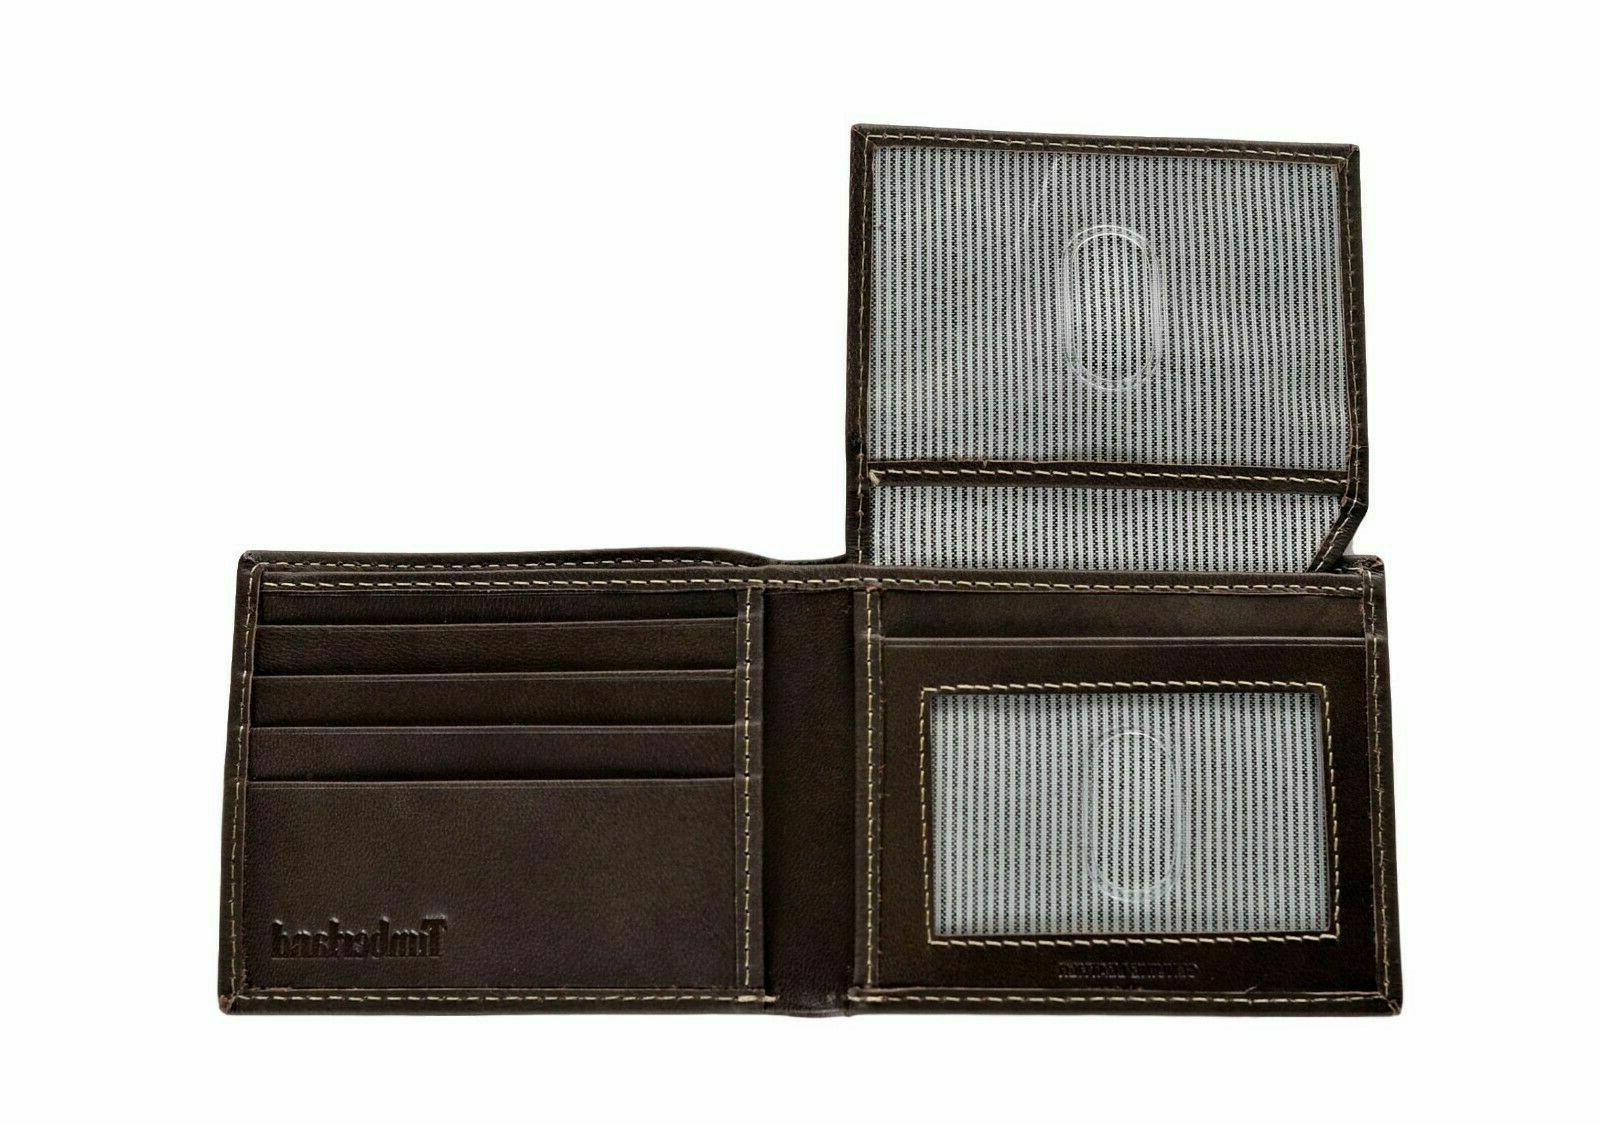 Timberland Leather Wallet with Passcase BROWN OR